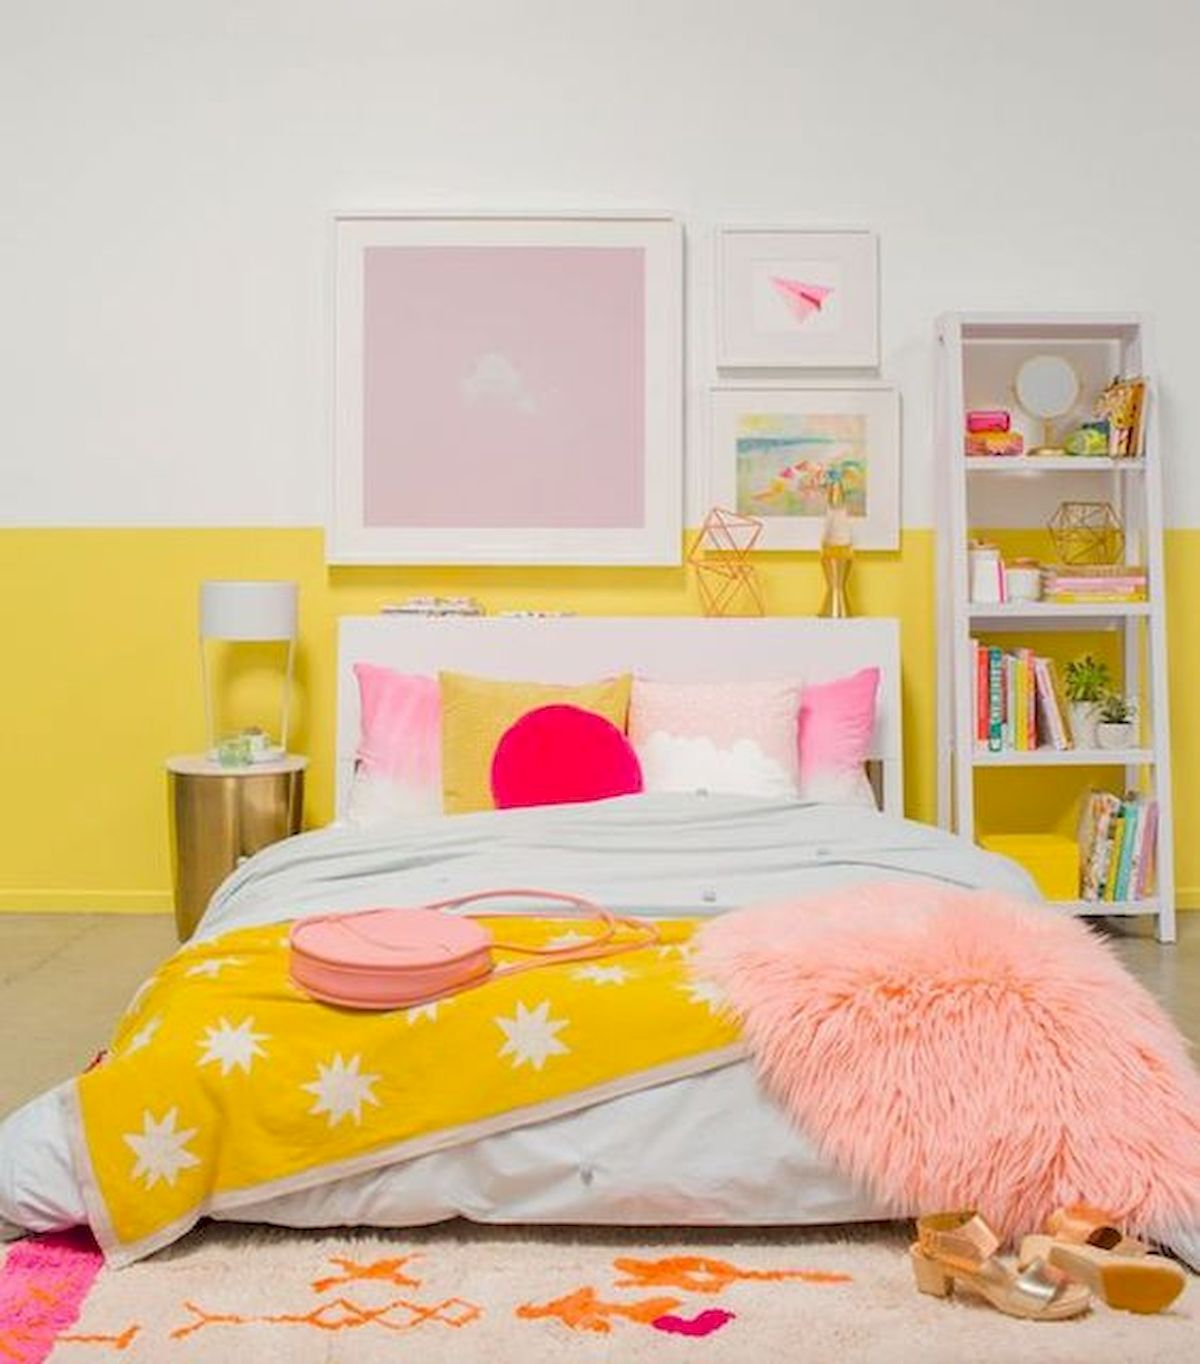 70 Awesome Colorful Bedroom Design Ideas and Remodel (44)